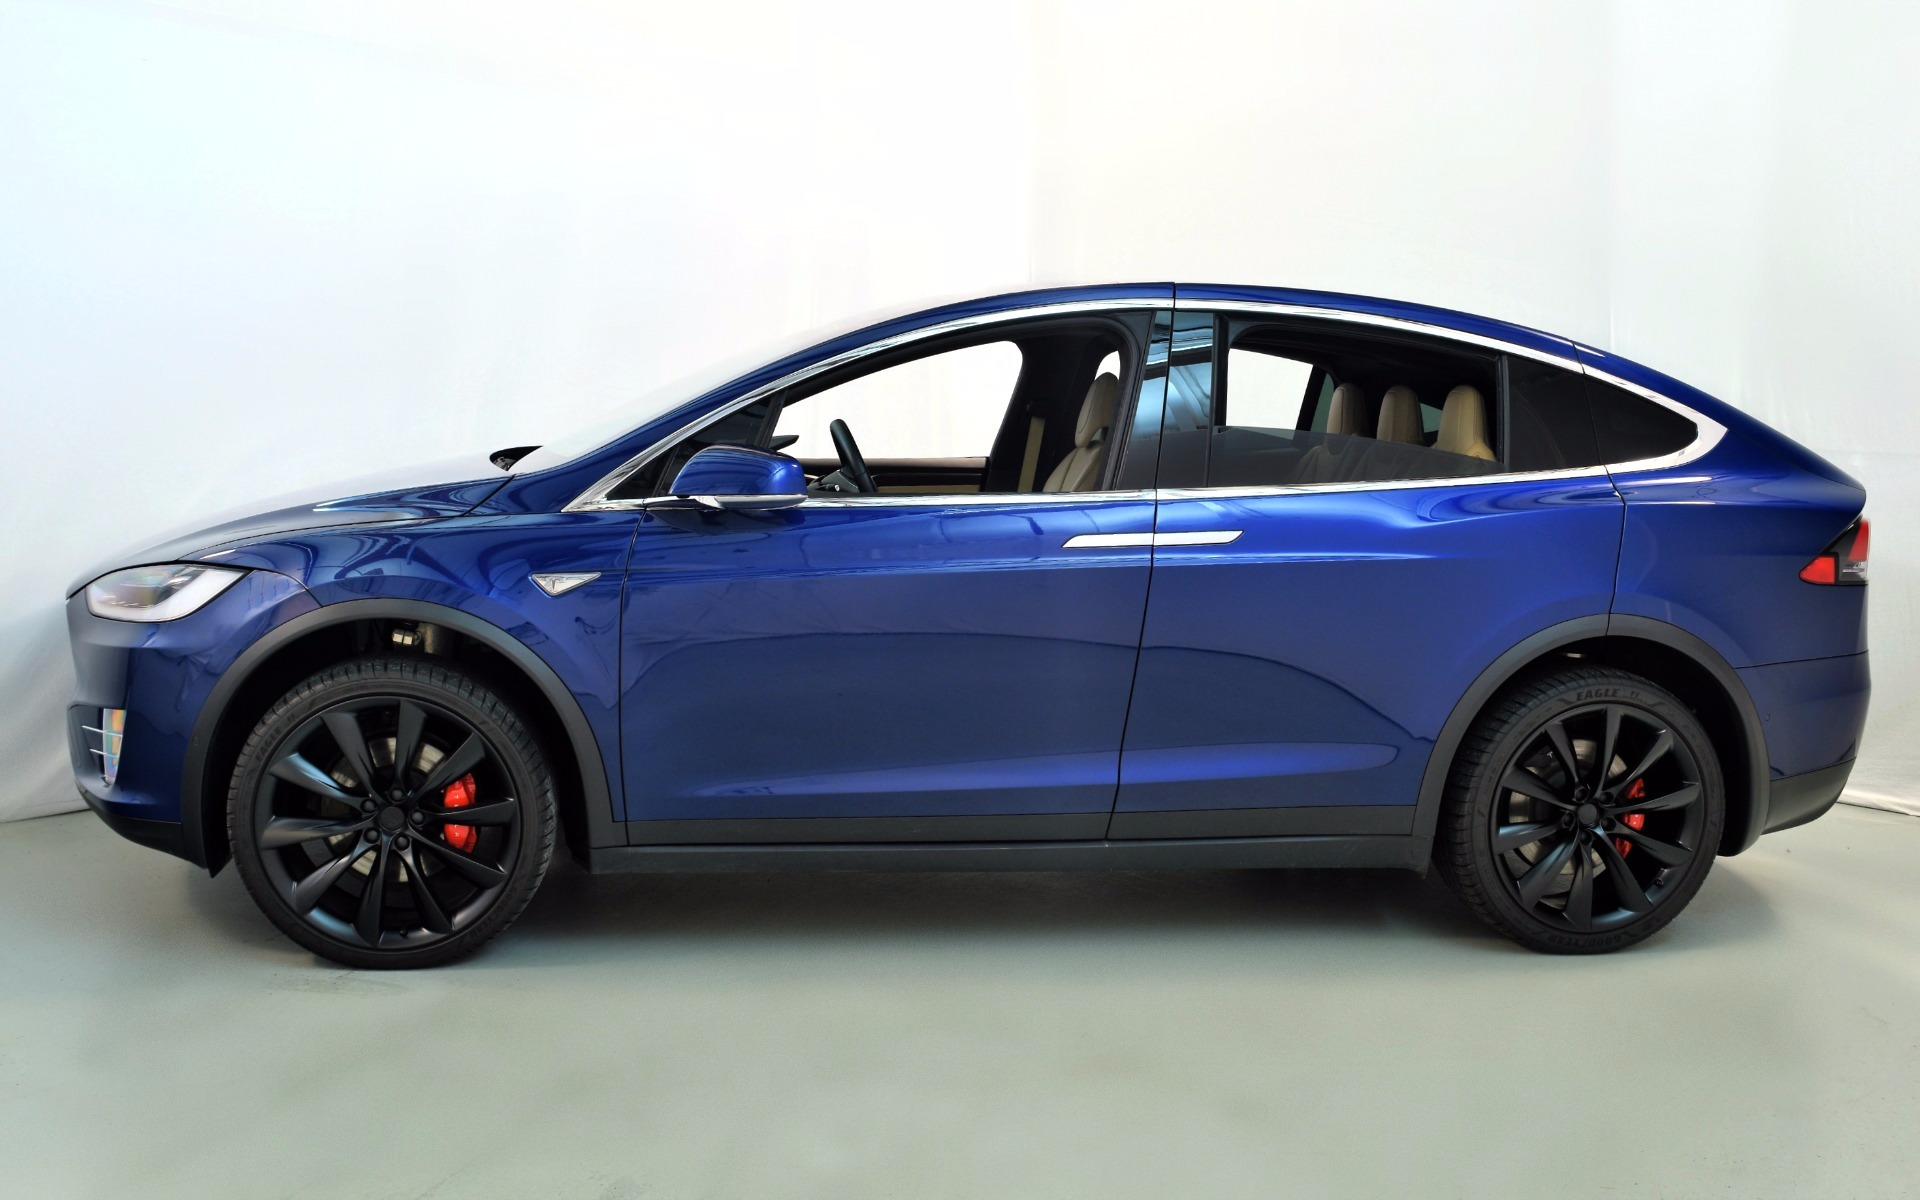 Tesla P90d For Sale >> 2016 TESLA MODEL X P90D For Sale in Norwell, MA 006757 | Mclaren Boston